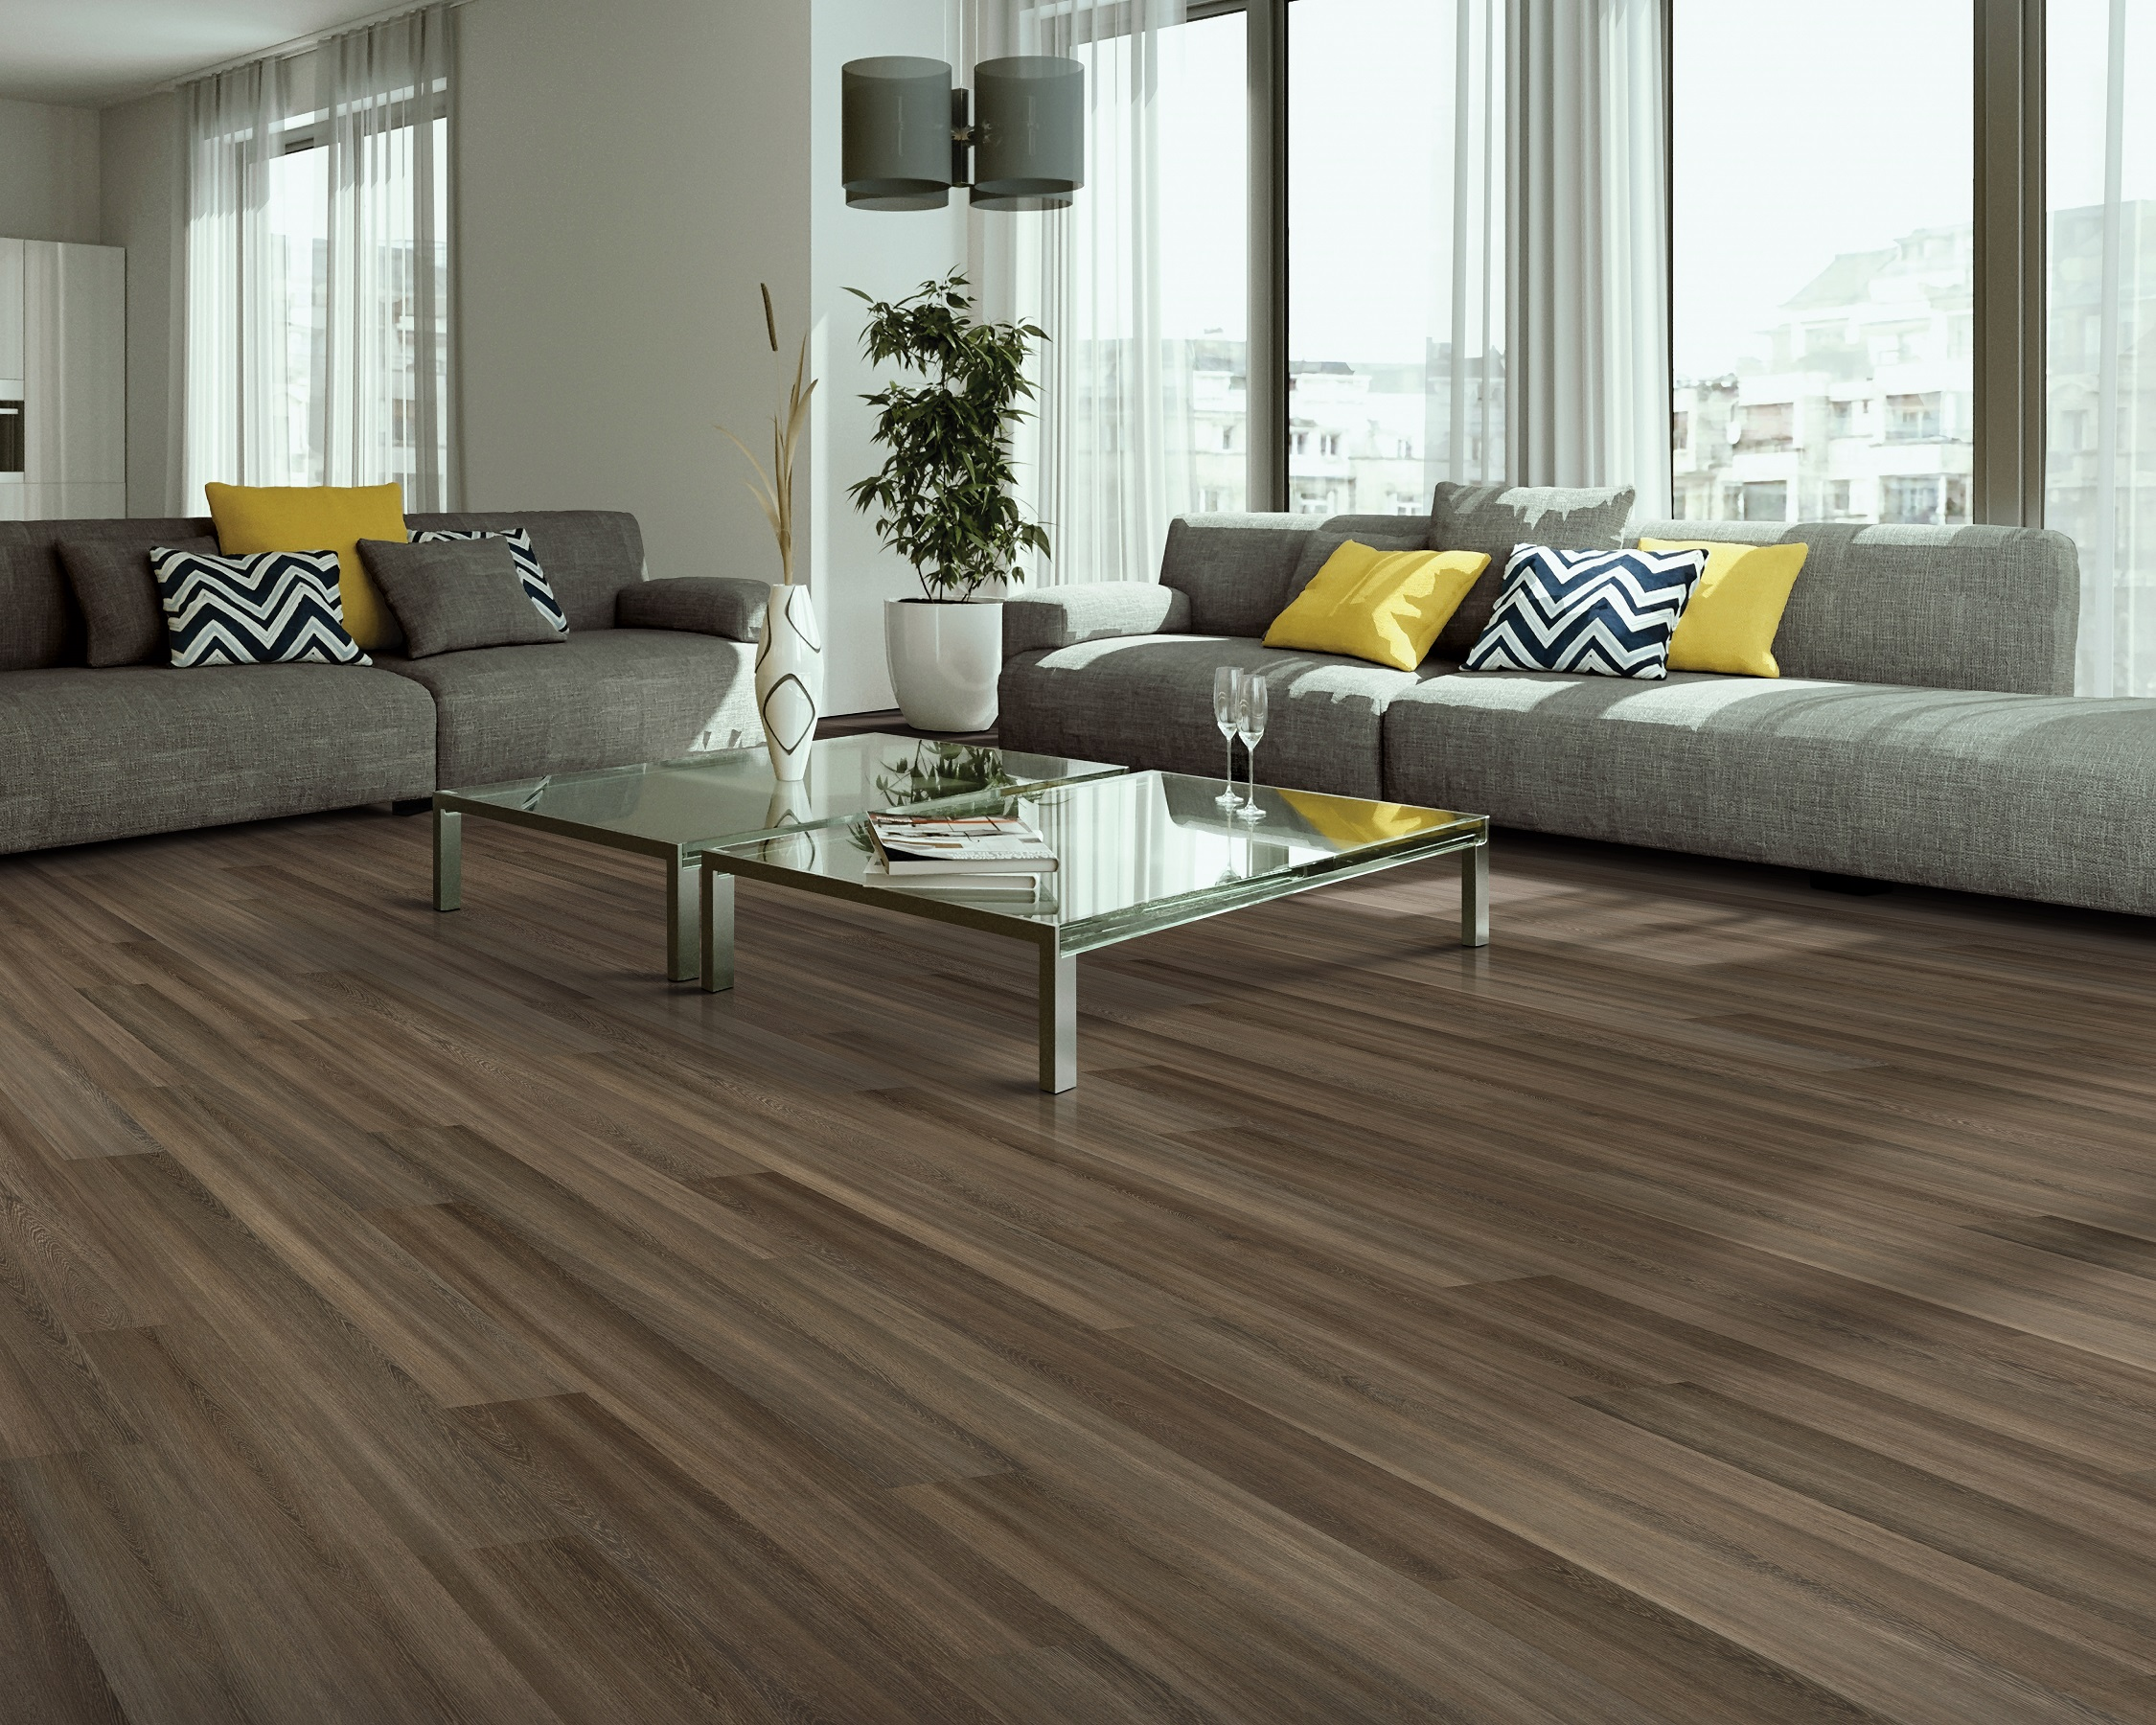 Wood-look vinyl plank flooring in a Fort Myers, FL home